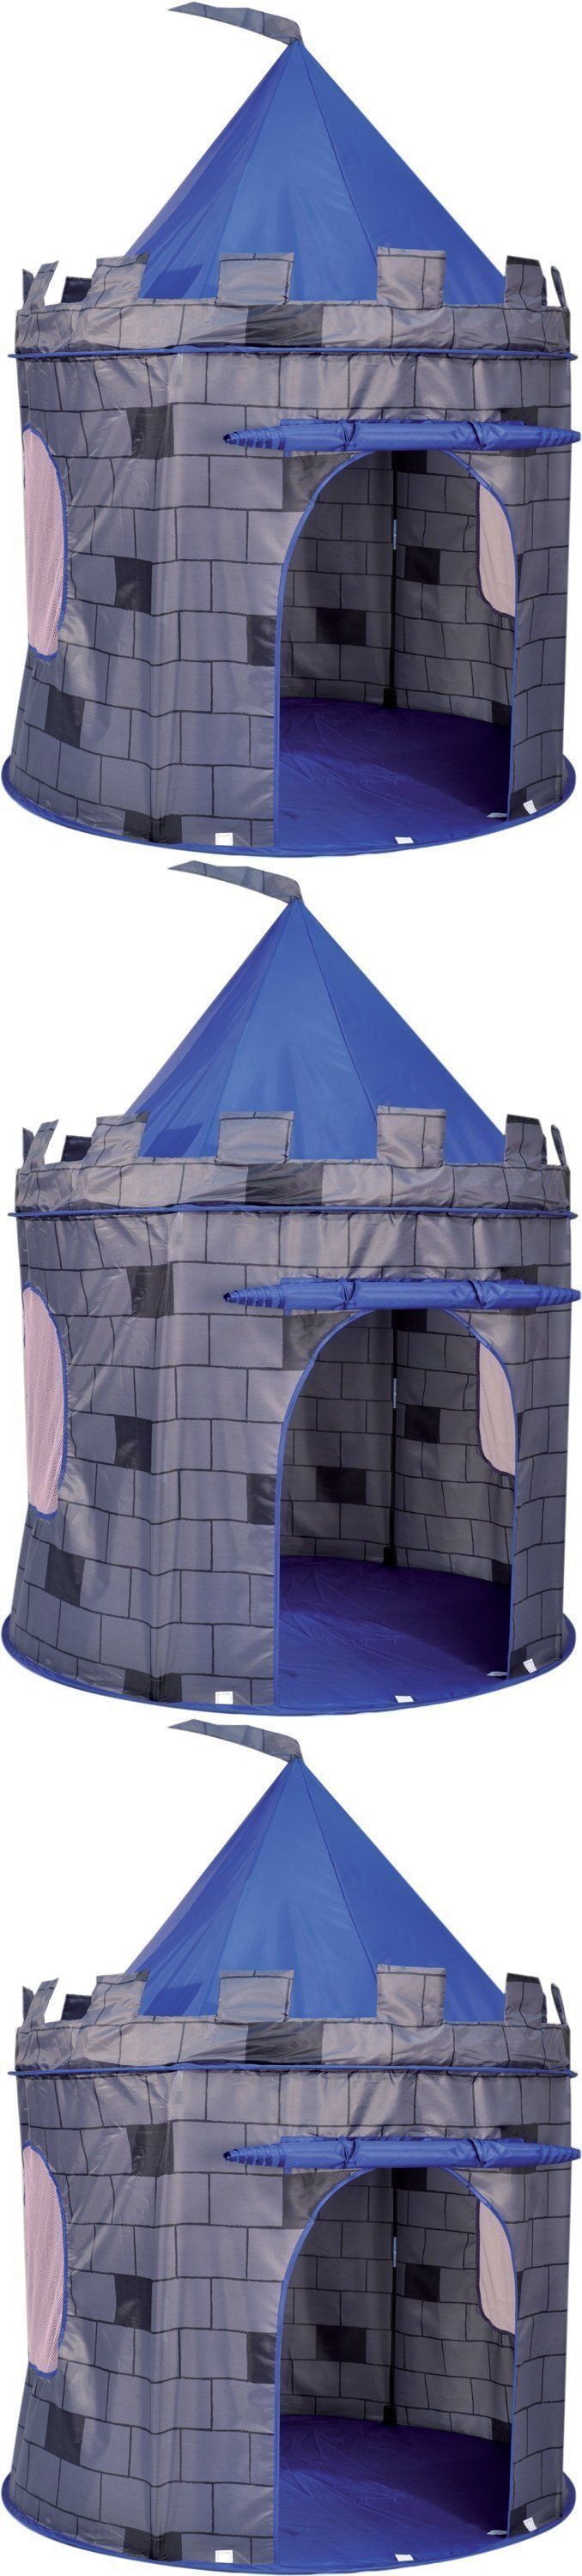 Other Play Tents and Tunnels 11744: Kids Play Tents And Tunnels Castle Boy Knight S Pop Up Kids Playhouse Blue -> BUY IT NOW ONLY: $32.99 on eBay!